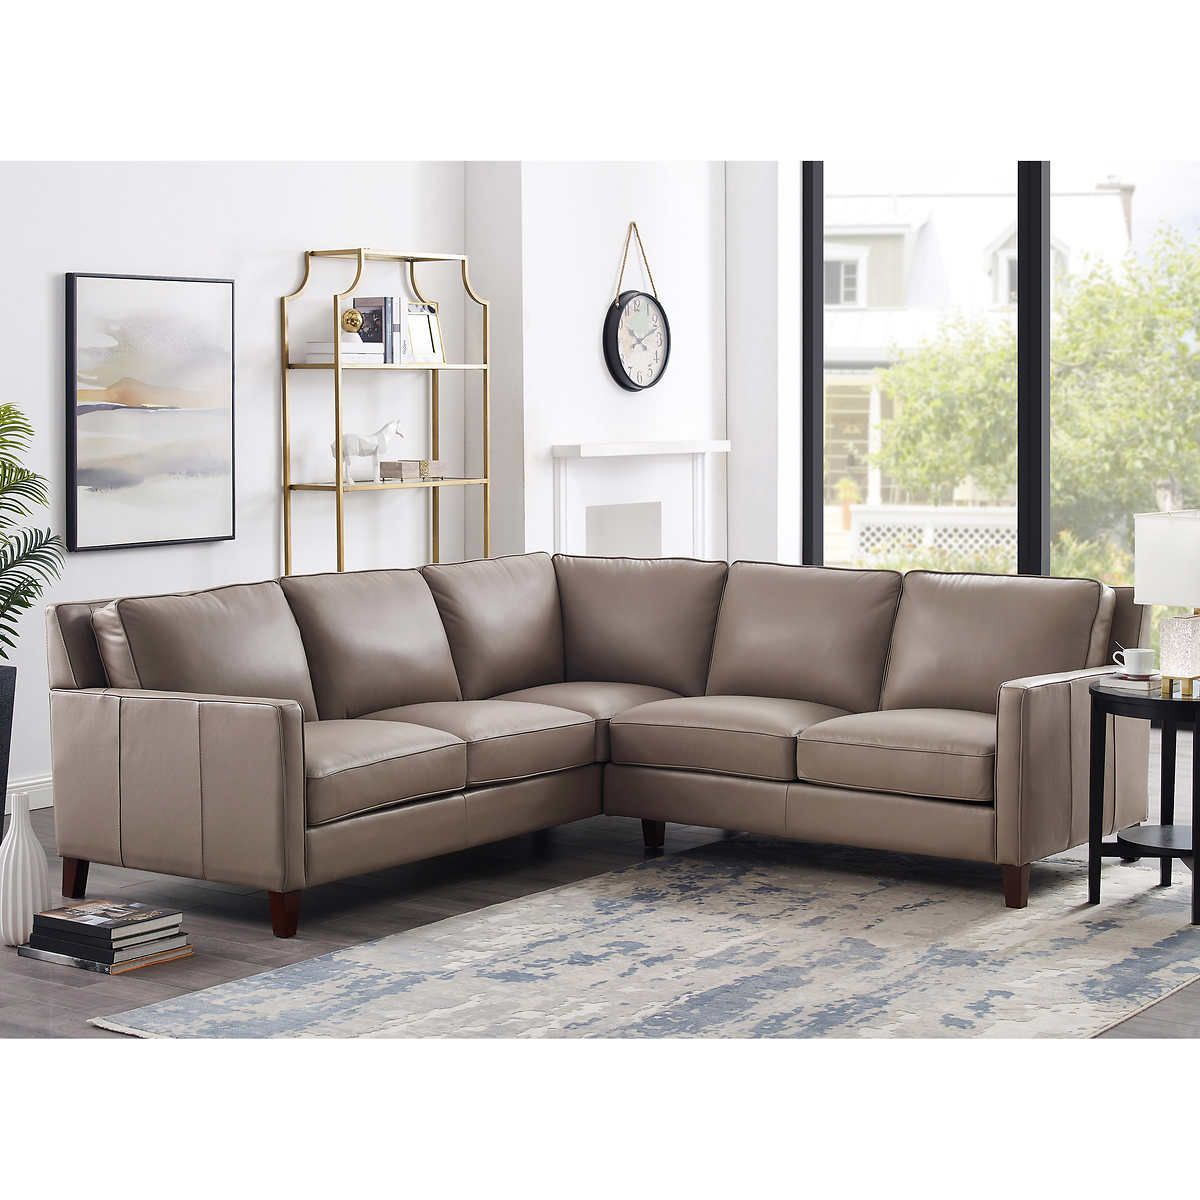 West Park Leather Sectional Leather Sectional Leather Couches Living Room Leather Sectional Sofas